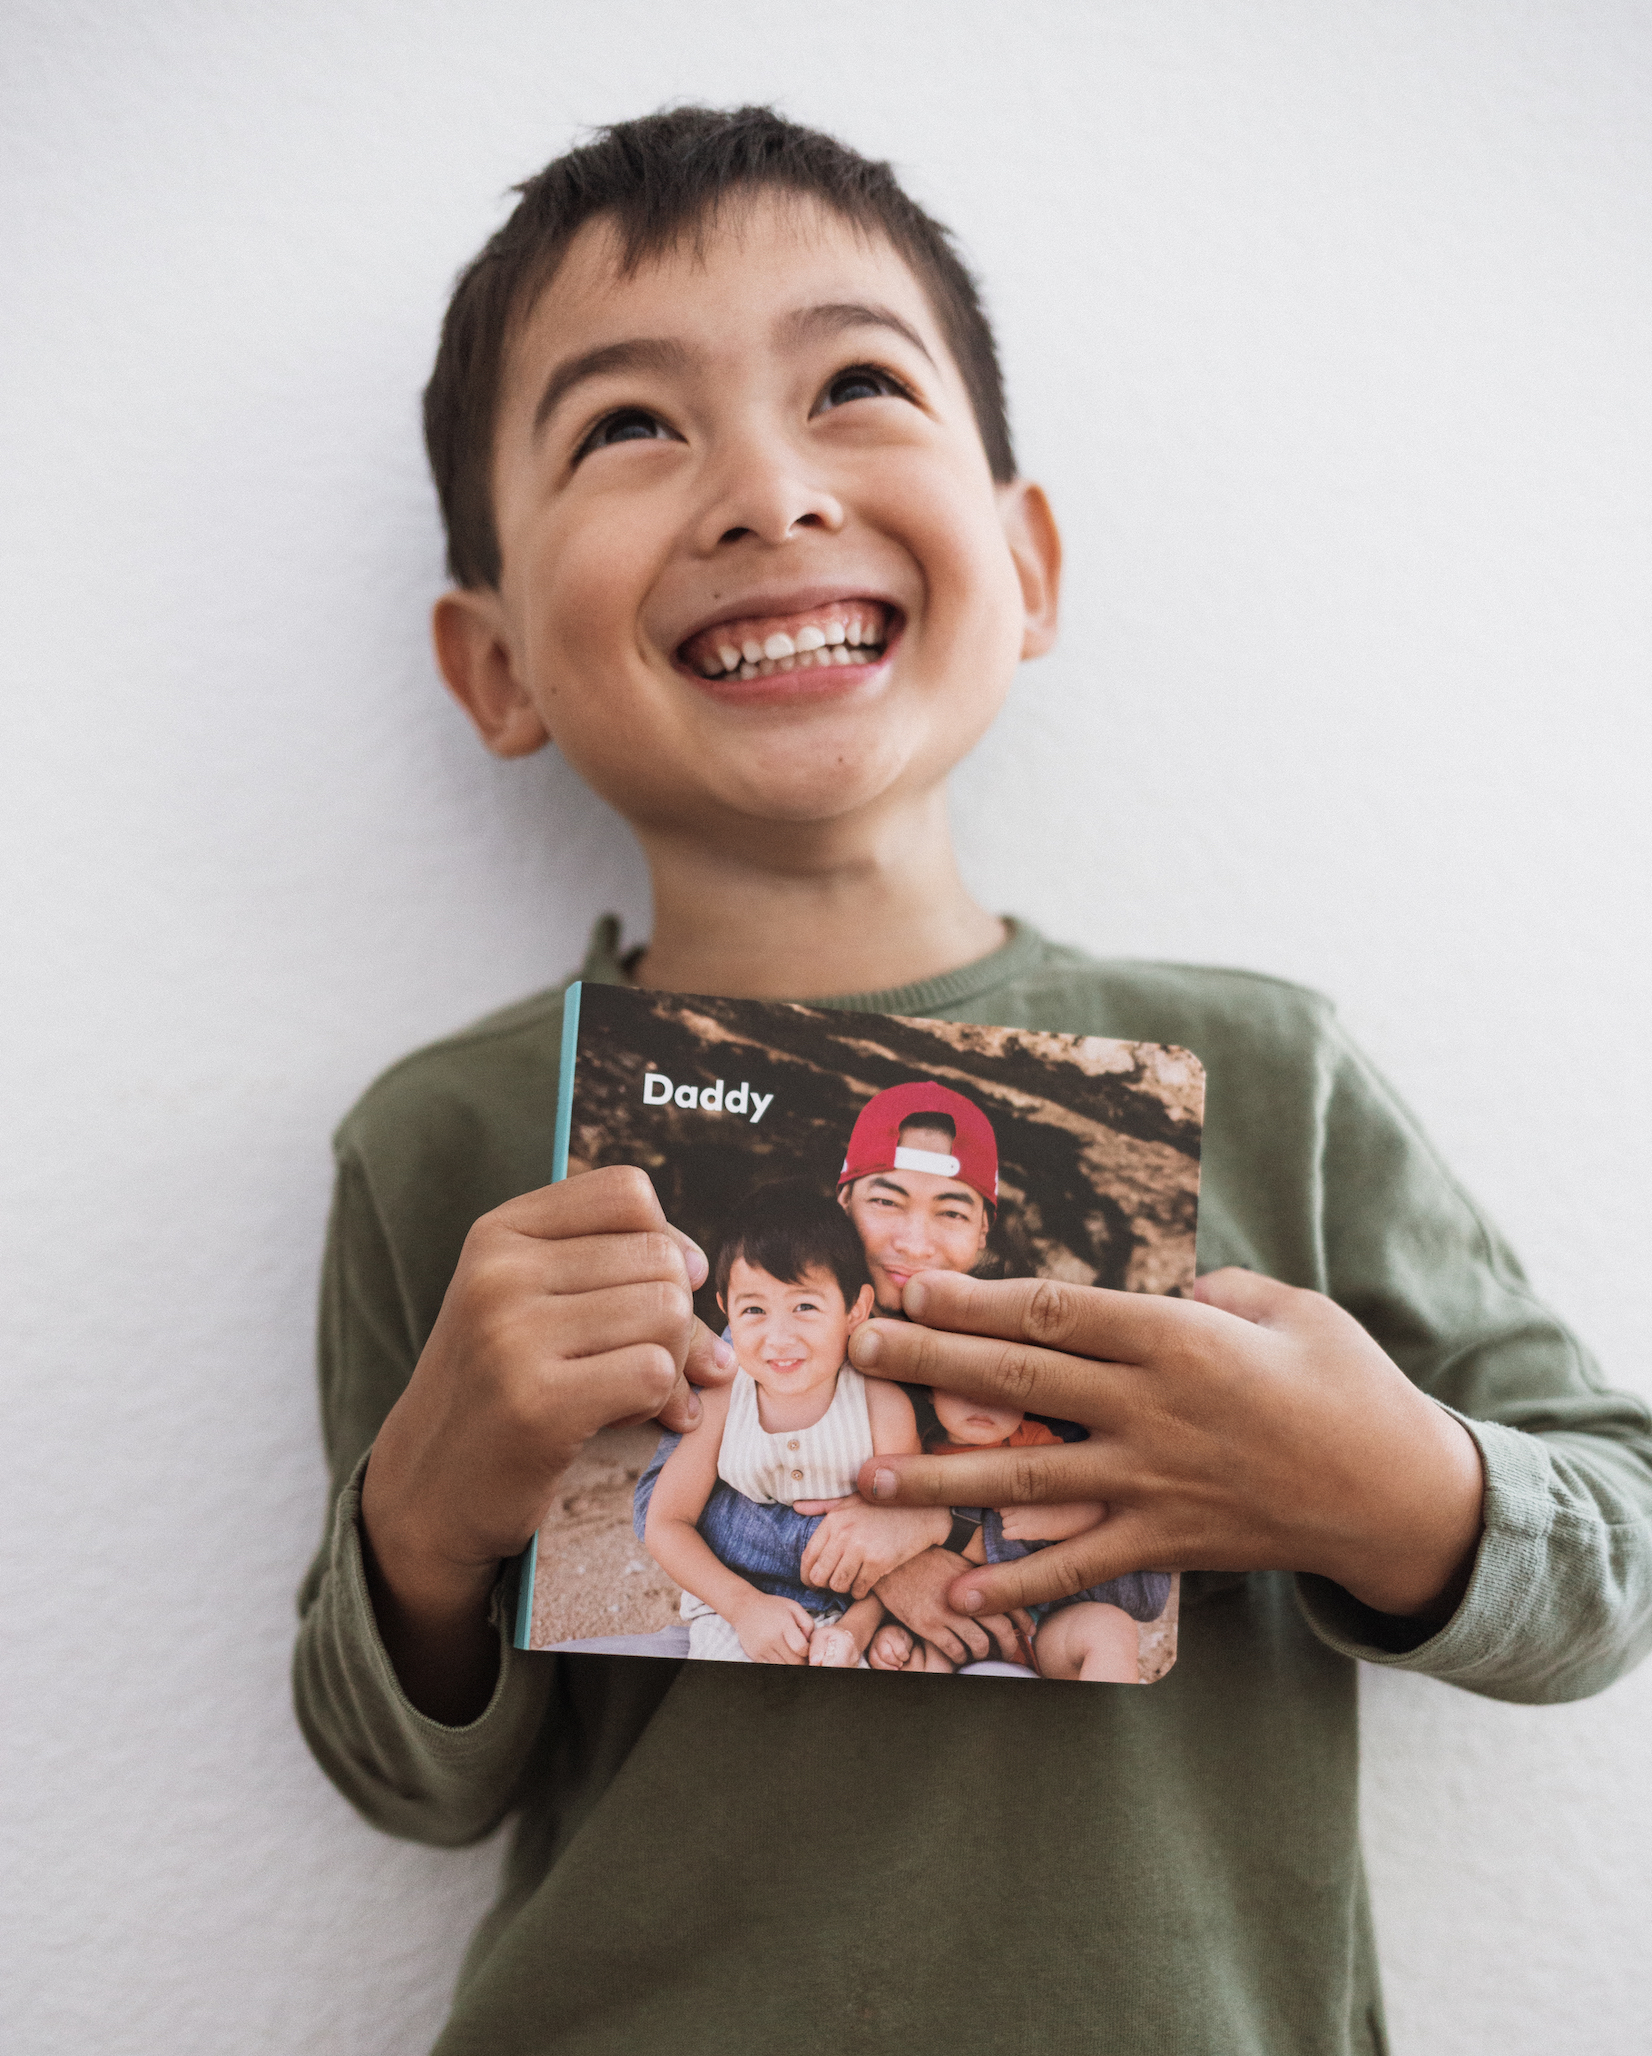 Little boy holding up Artifact Uprising Board Book titled Daddy